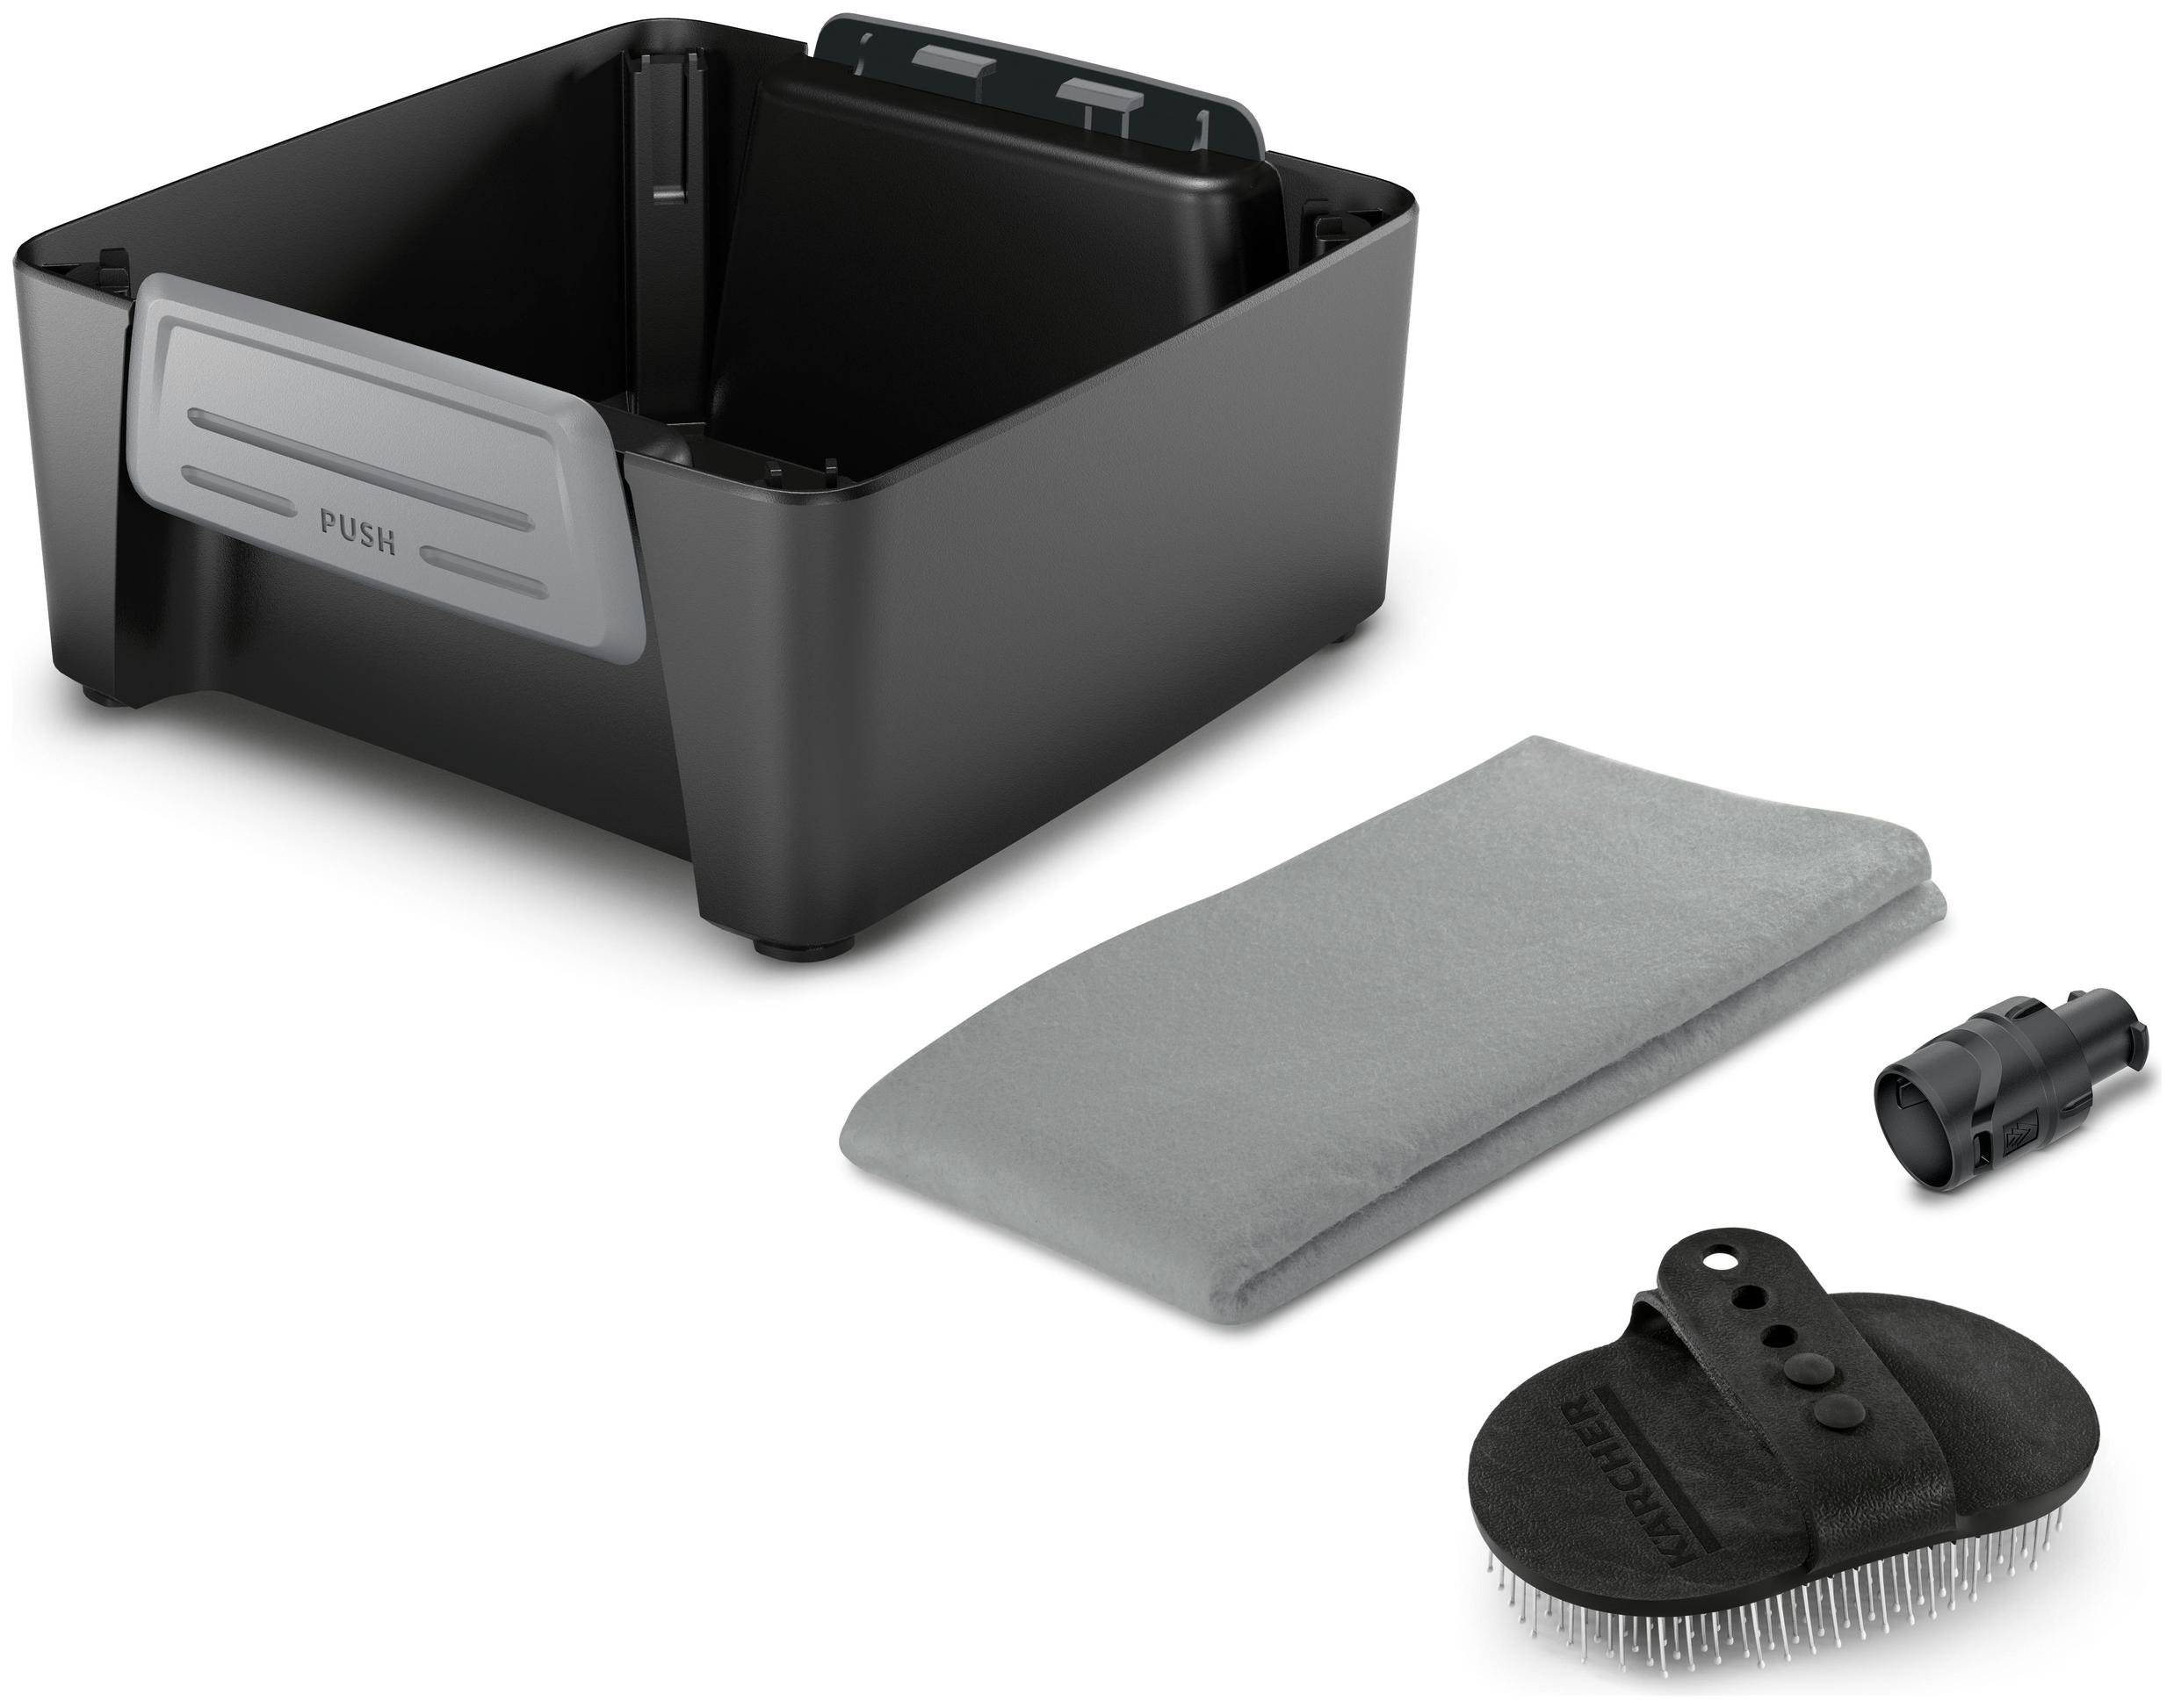 Image of Karcher OC3 Pet Accessories Box